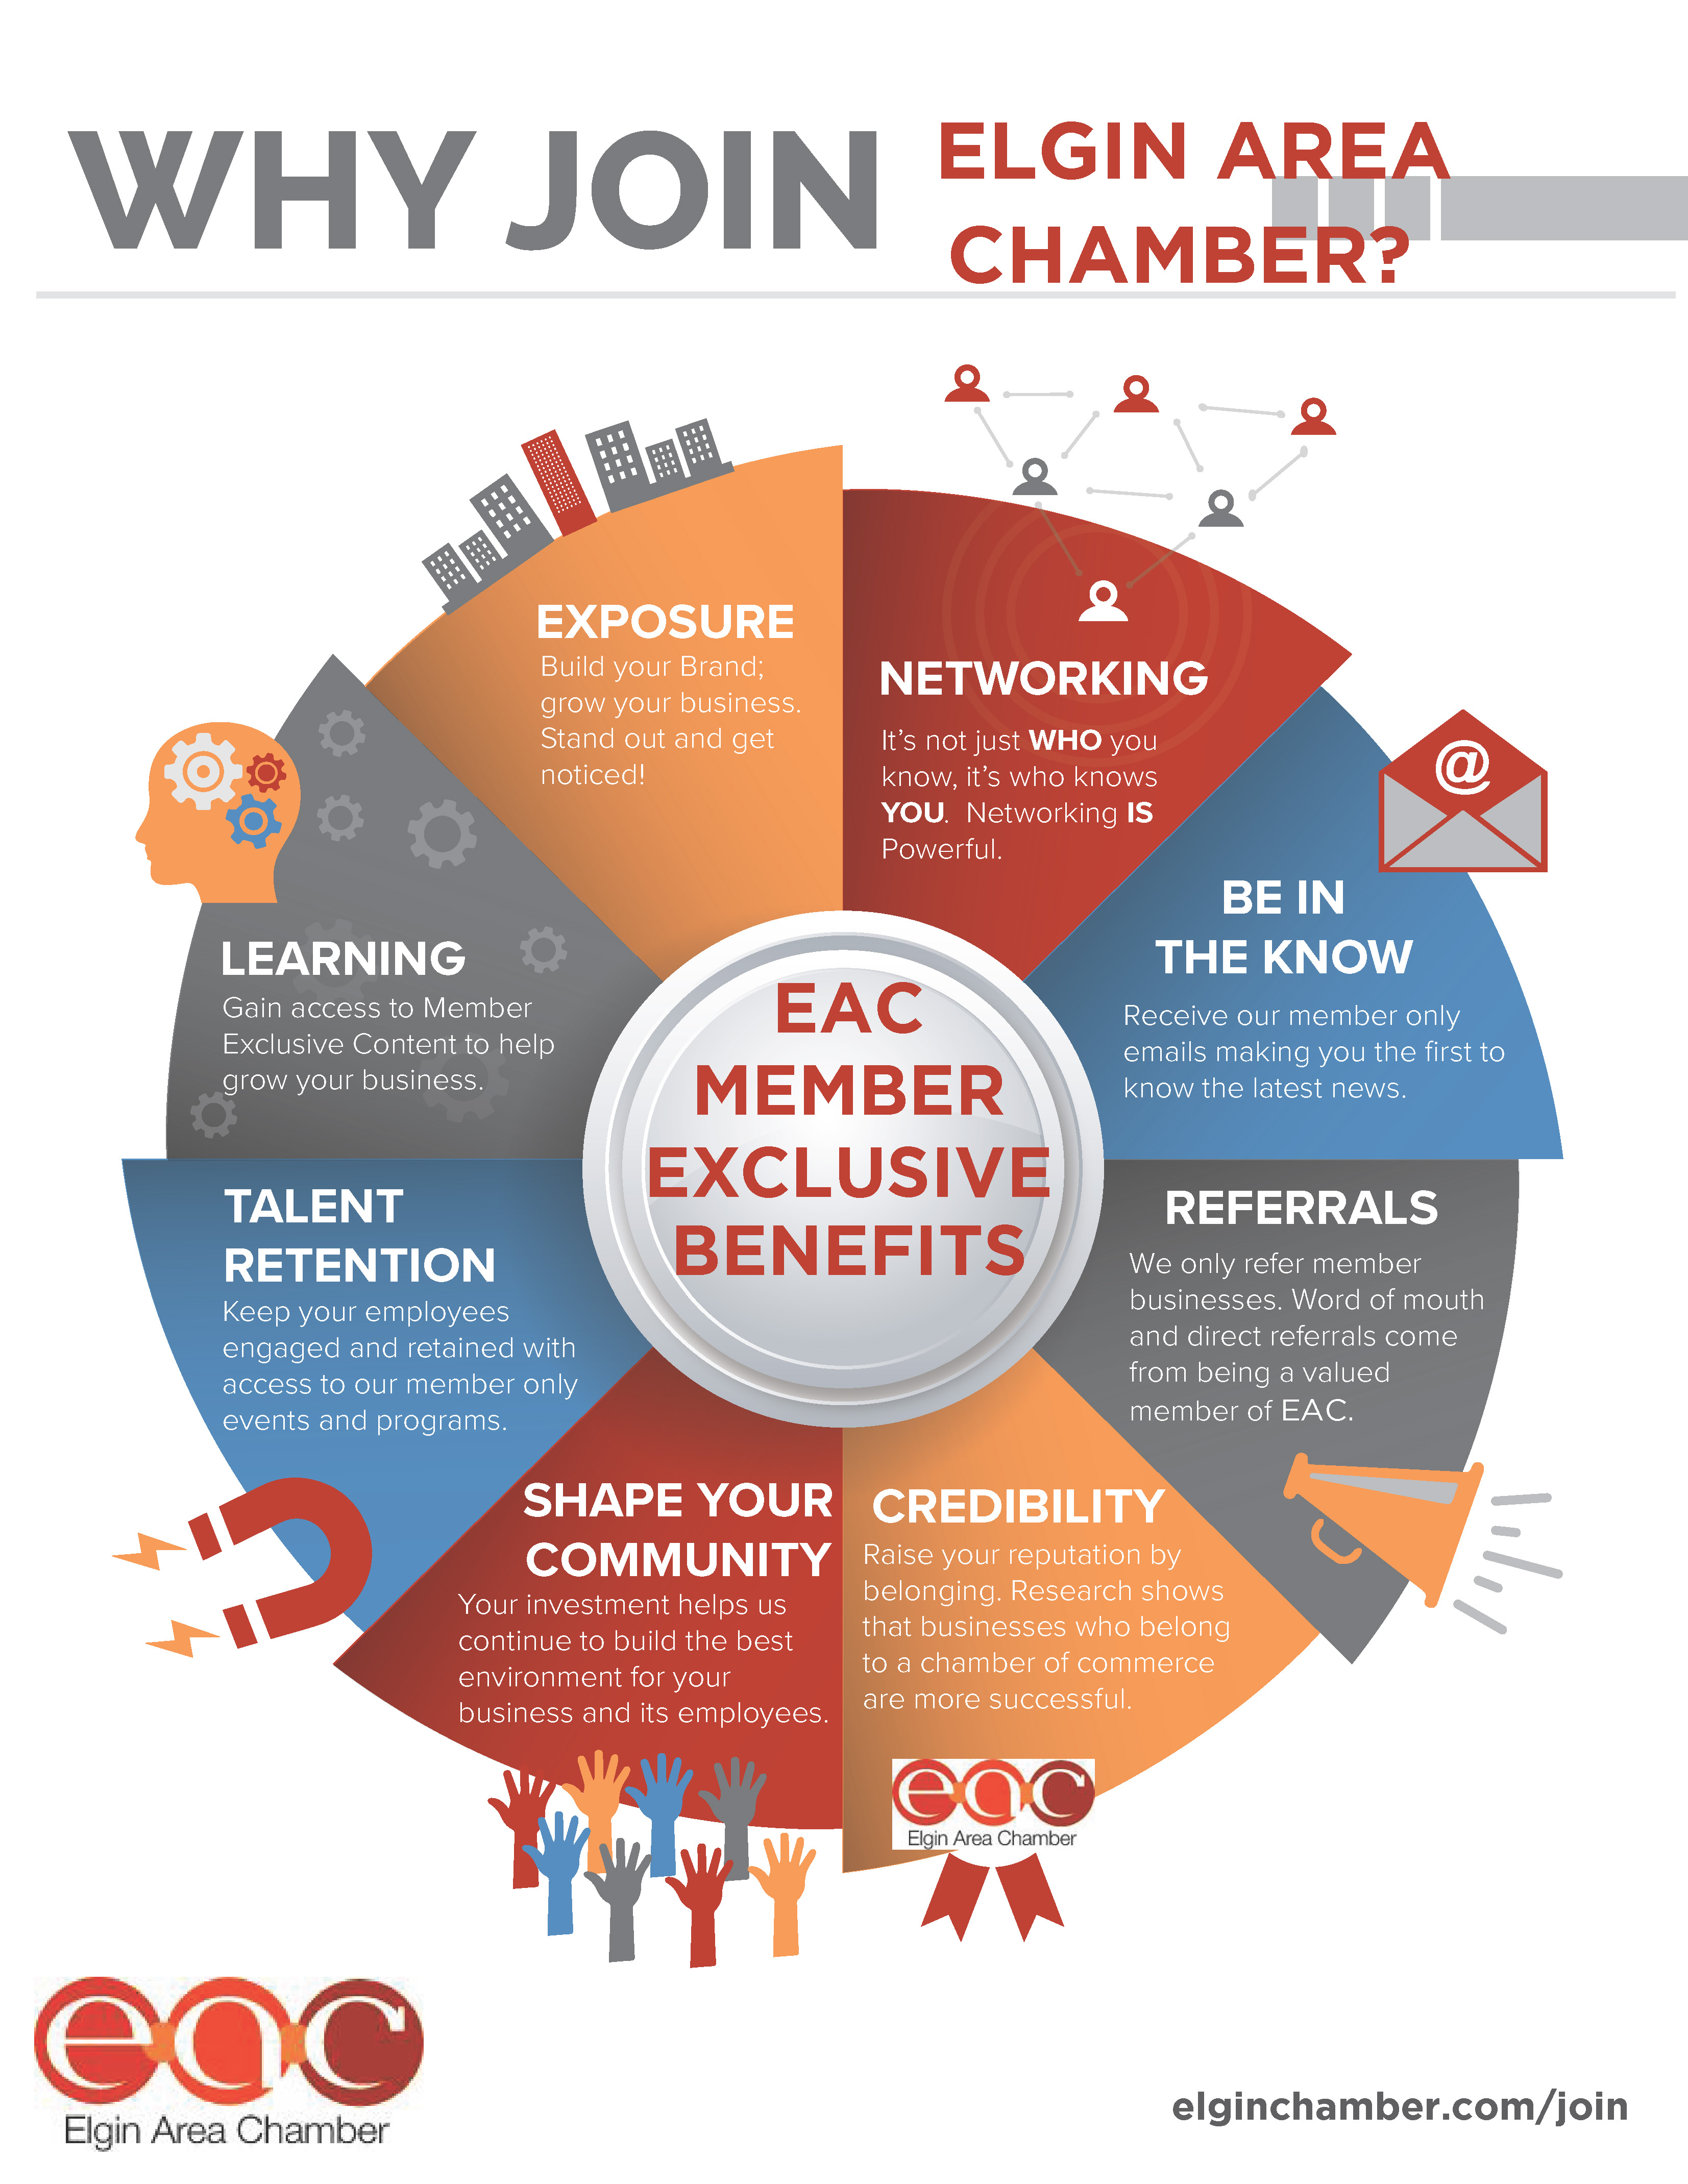 Why-Join-Elgin-Area-Chamber-Membership-Infographic-2018.jpg